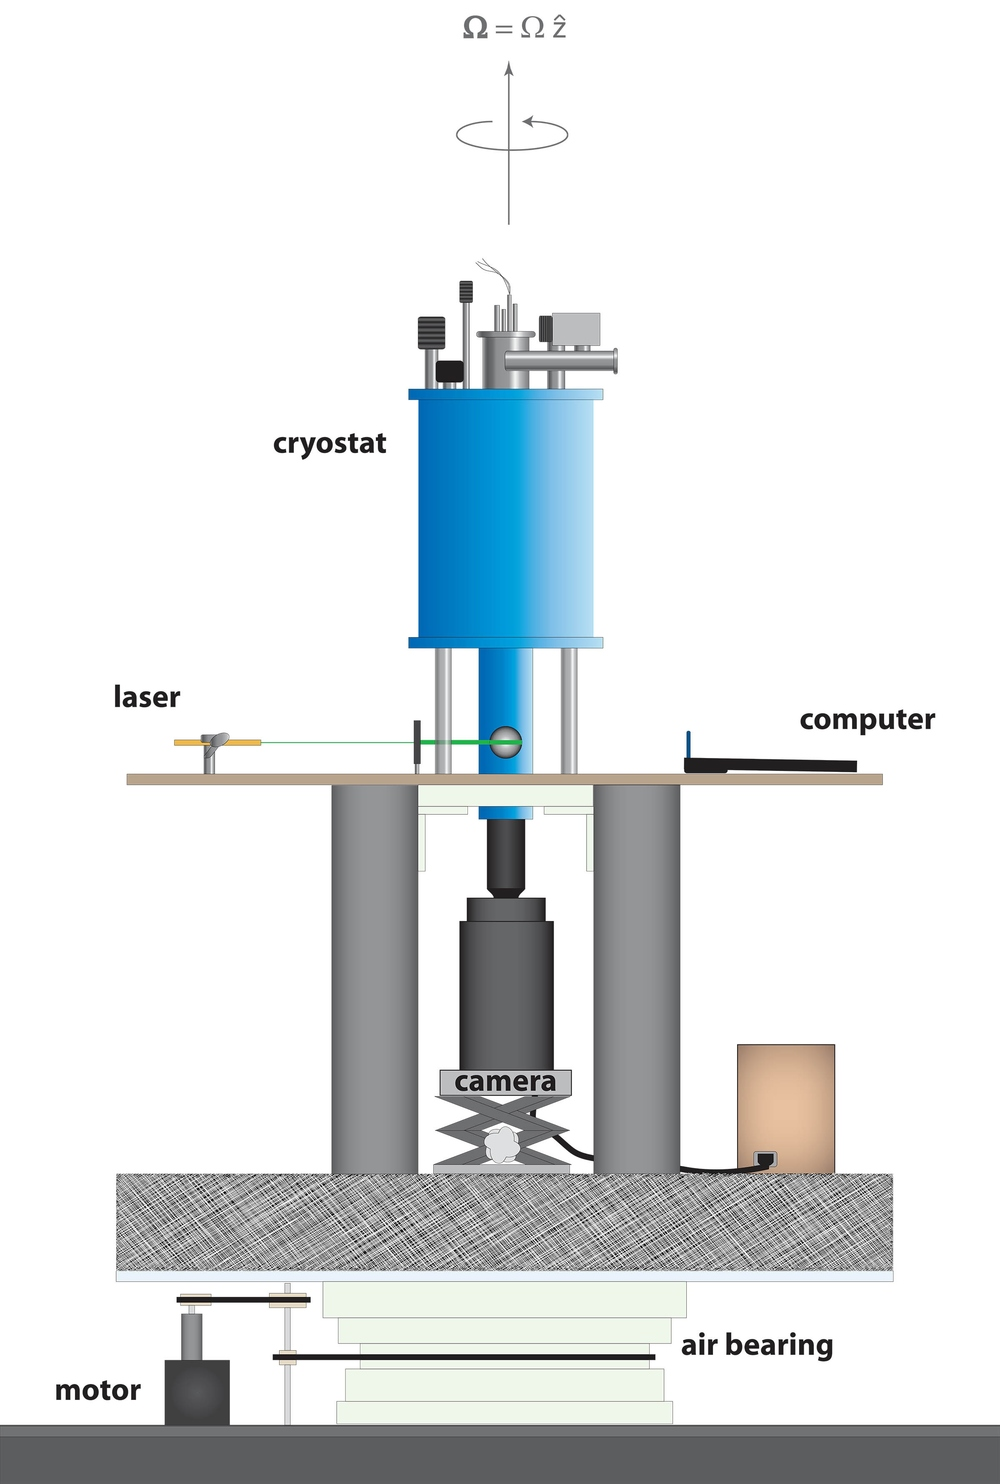 Superfluid helium setup:  Fully rotational cryostat, ultra-high-sensitivity CCD video camera, computer, laser, and optics.  Vacuum system remained in lab (non-rotational) frame, requiring novel coupling to precisely control temperature and tracking-particle injections while rotating at 10 Hz.  System controlled wirelessly.  Videos of superfluid helium quantum vortex dynamics captured in real time.